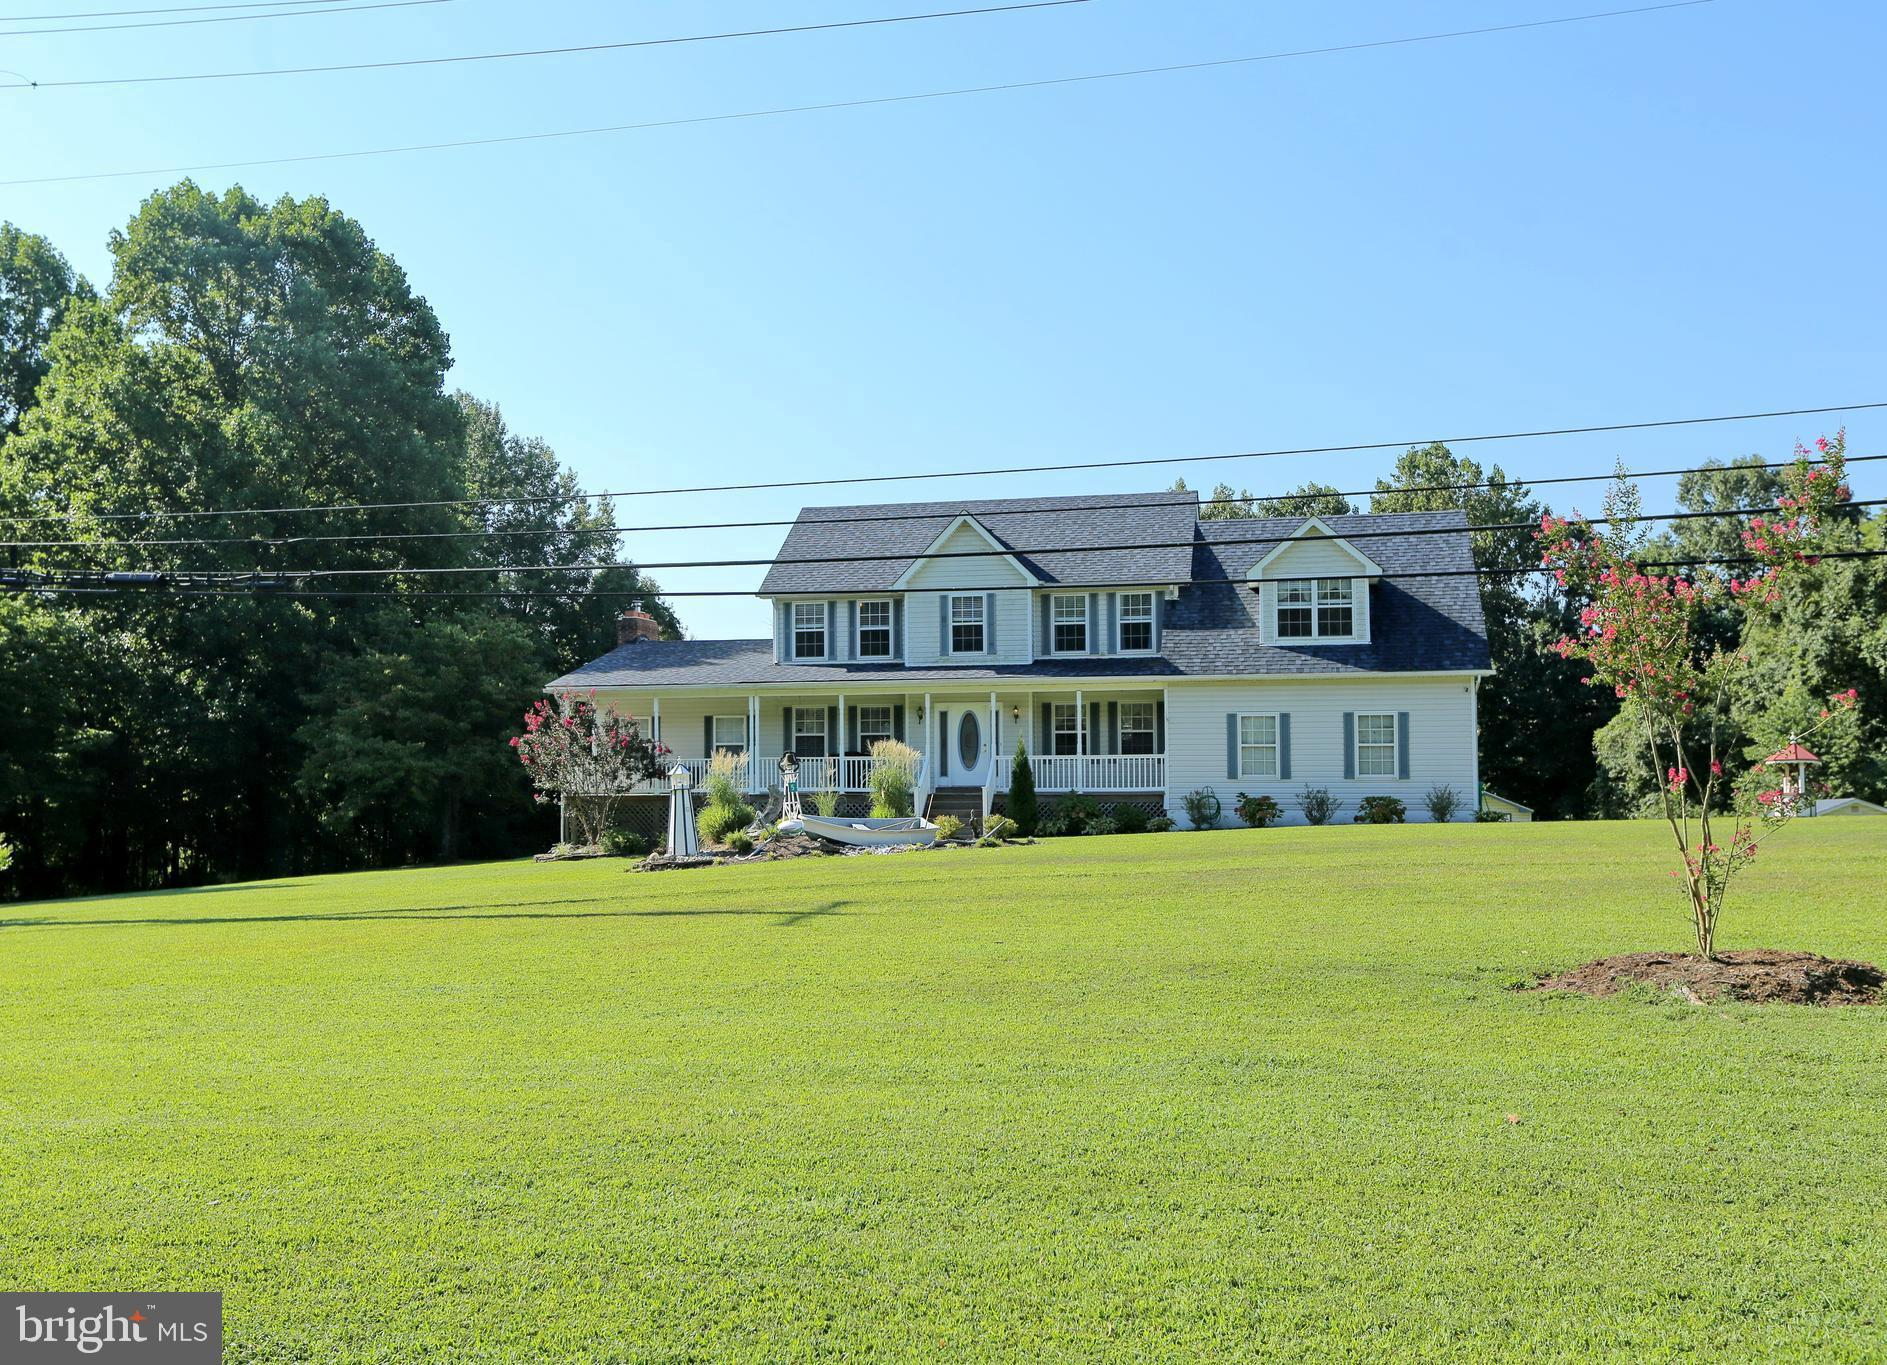 53 W BAY FRONT ROAD, TRACYS LANDING, MD 20779